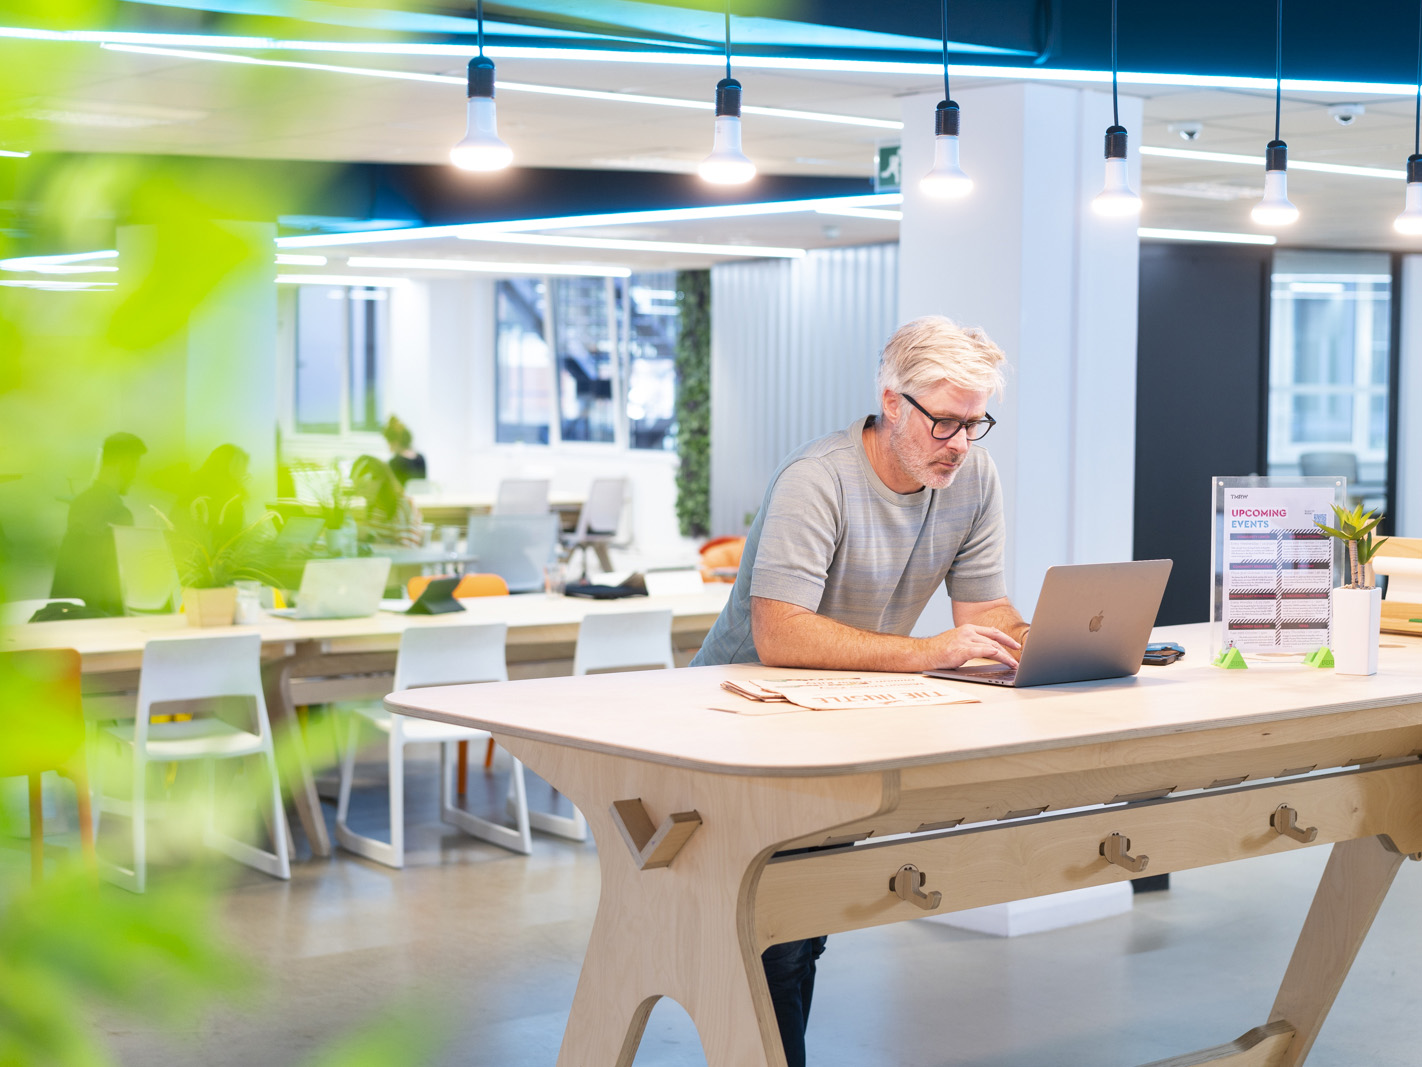 Man working standing desk coworking space